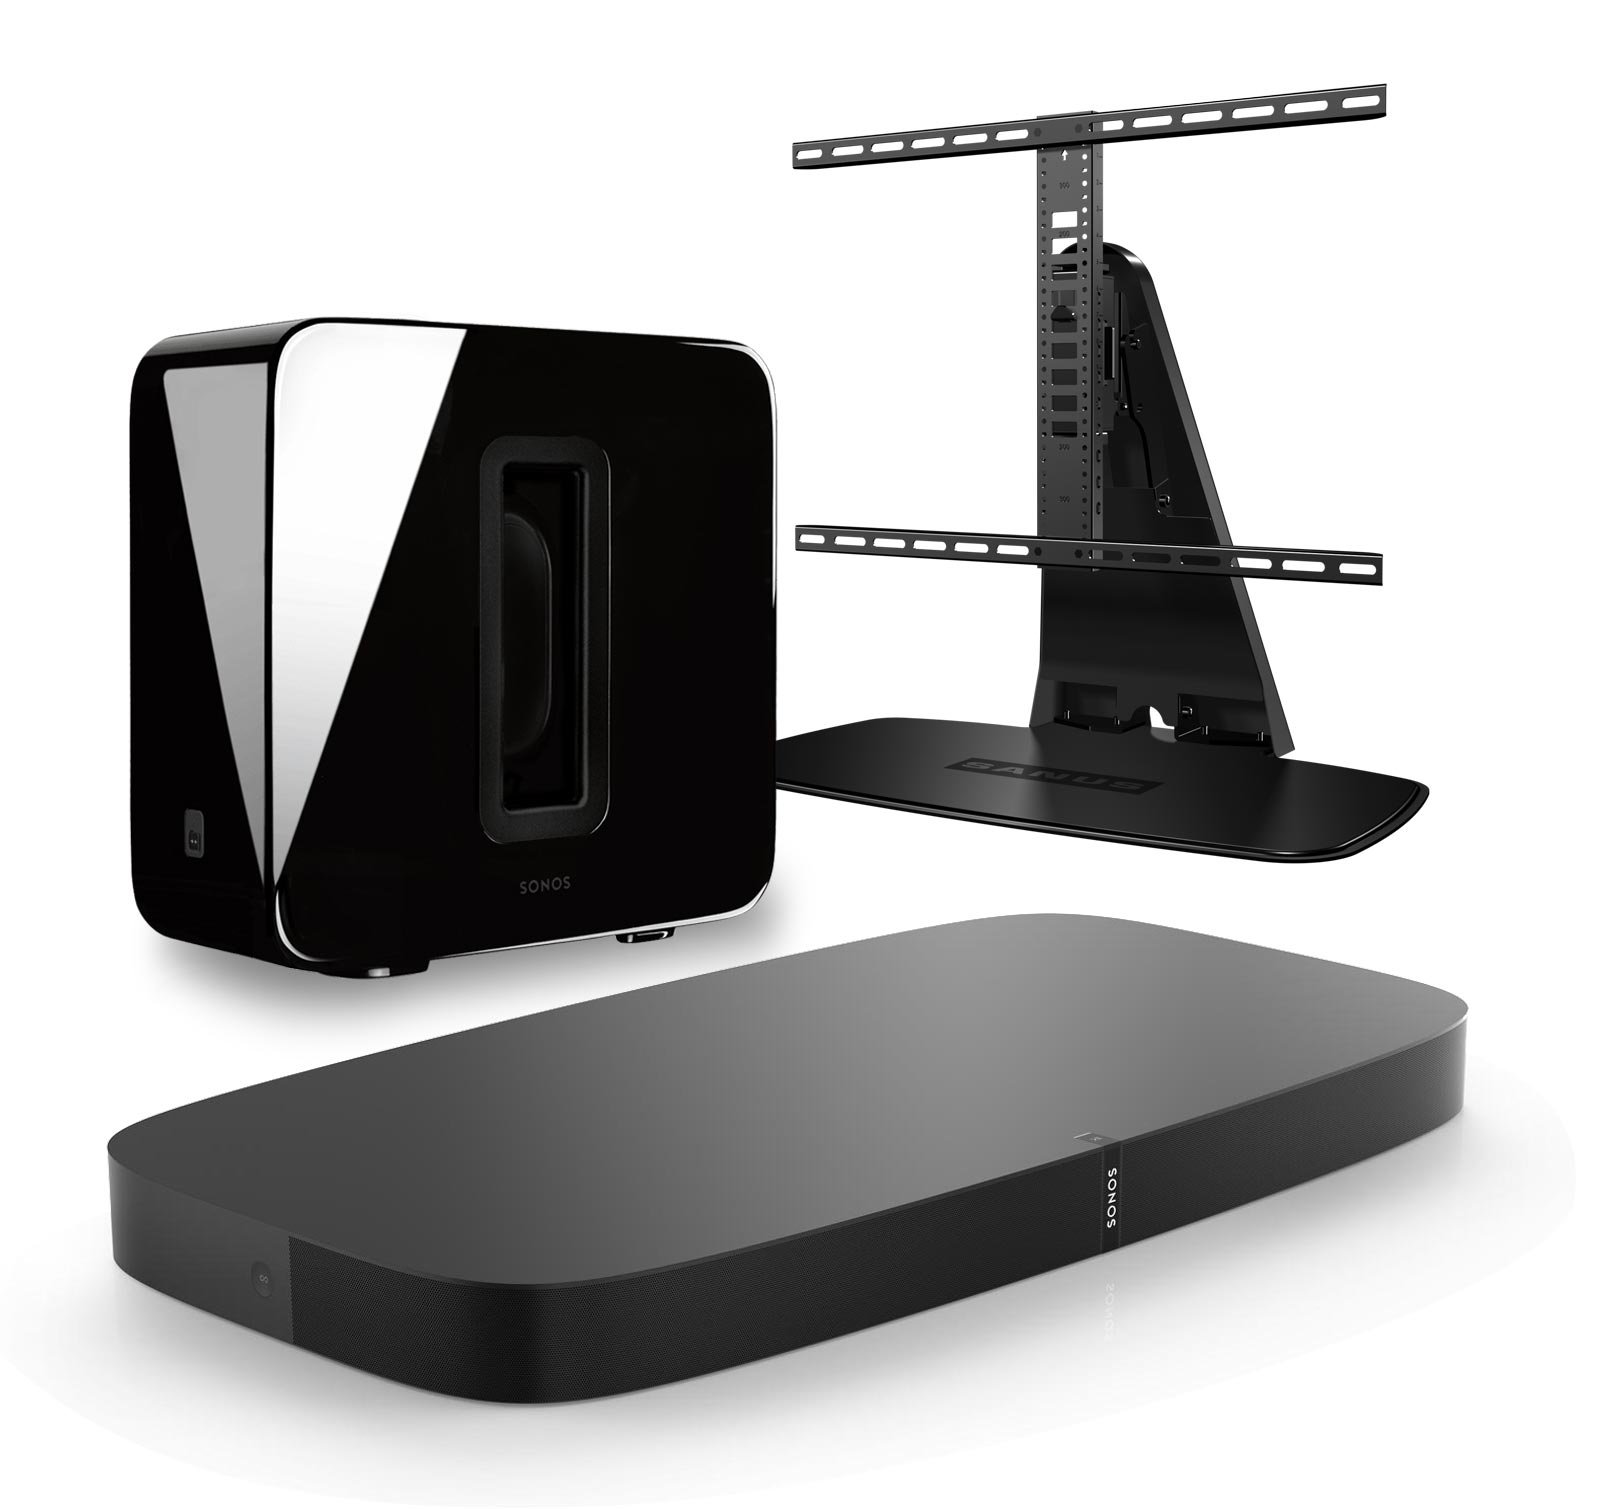 Sonos 3.1 Home Theater Digital Music System Bundle (PLAYBASE, SUB) Black & Sanus WSTV1-B1 Swivel TV Base Mount for Sonos PLAYBASE by Sonos